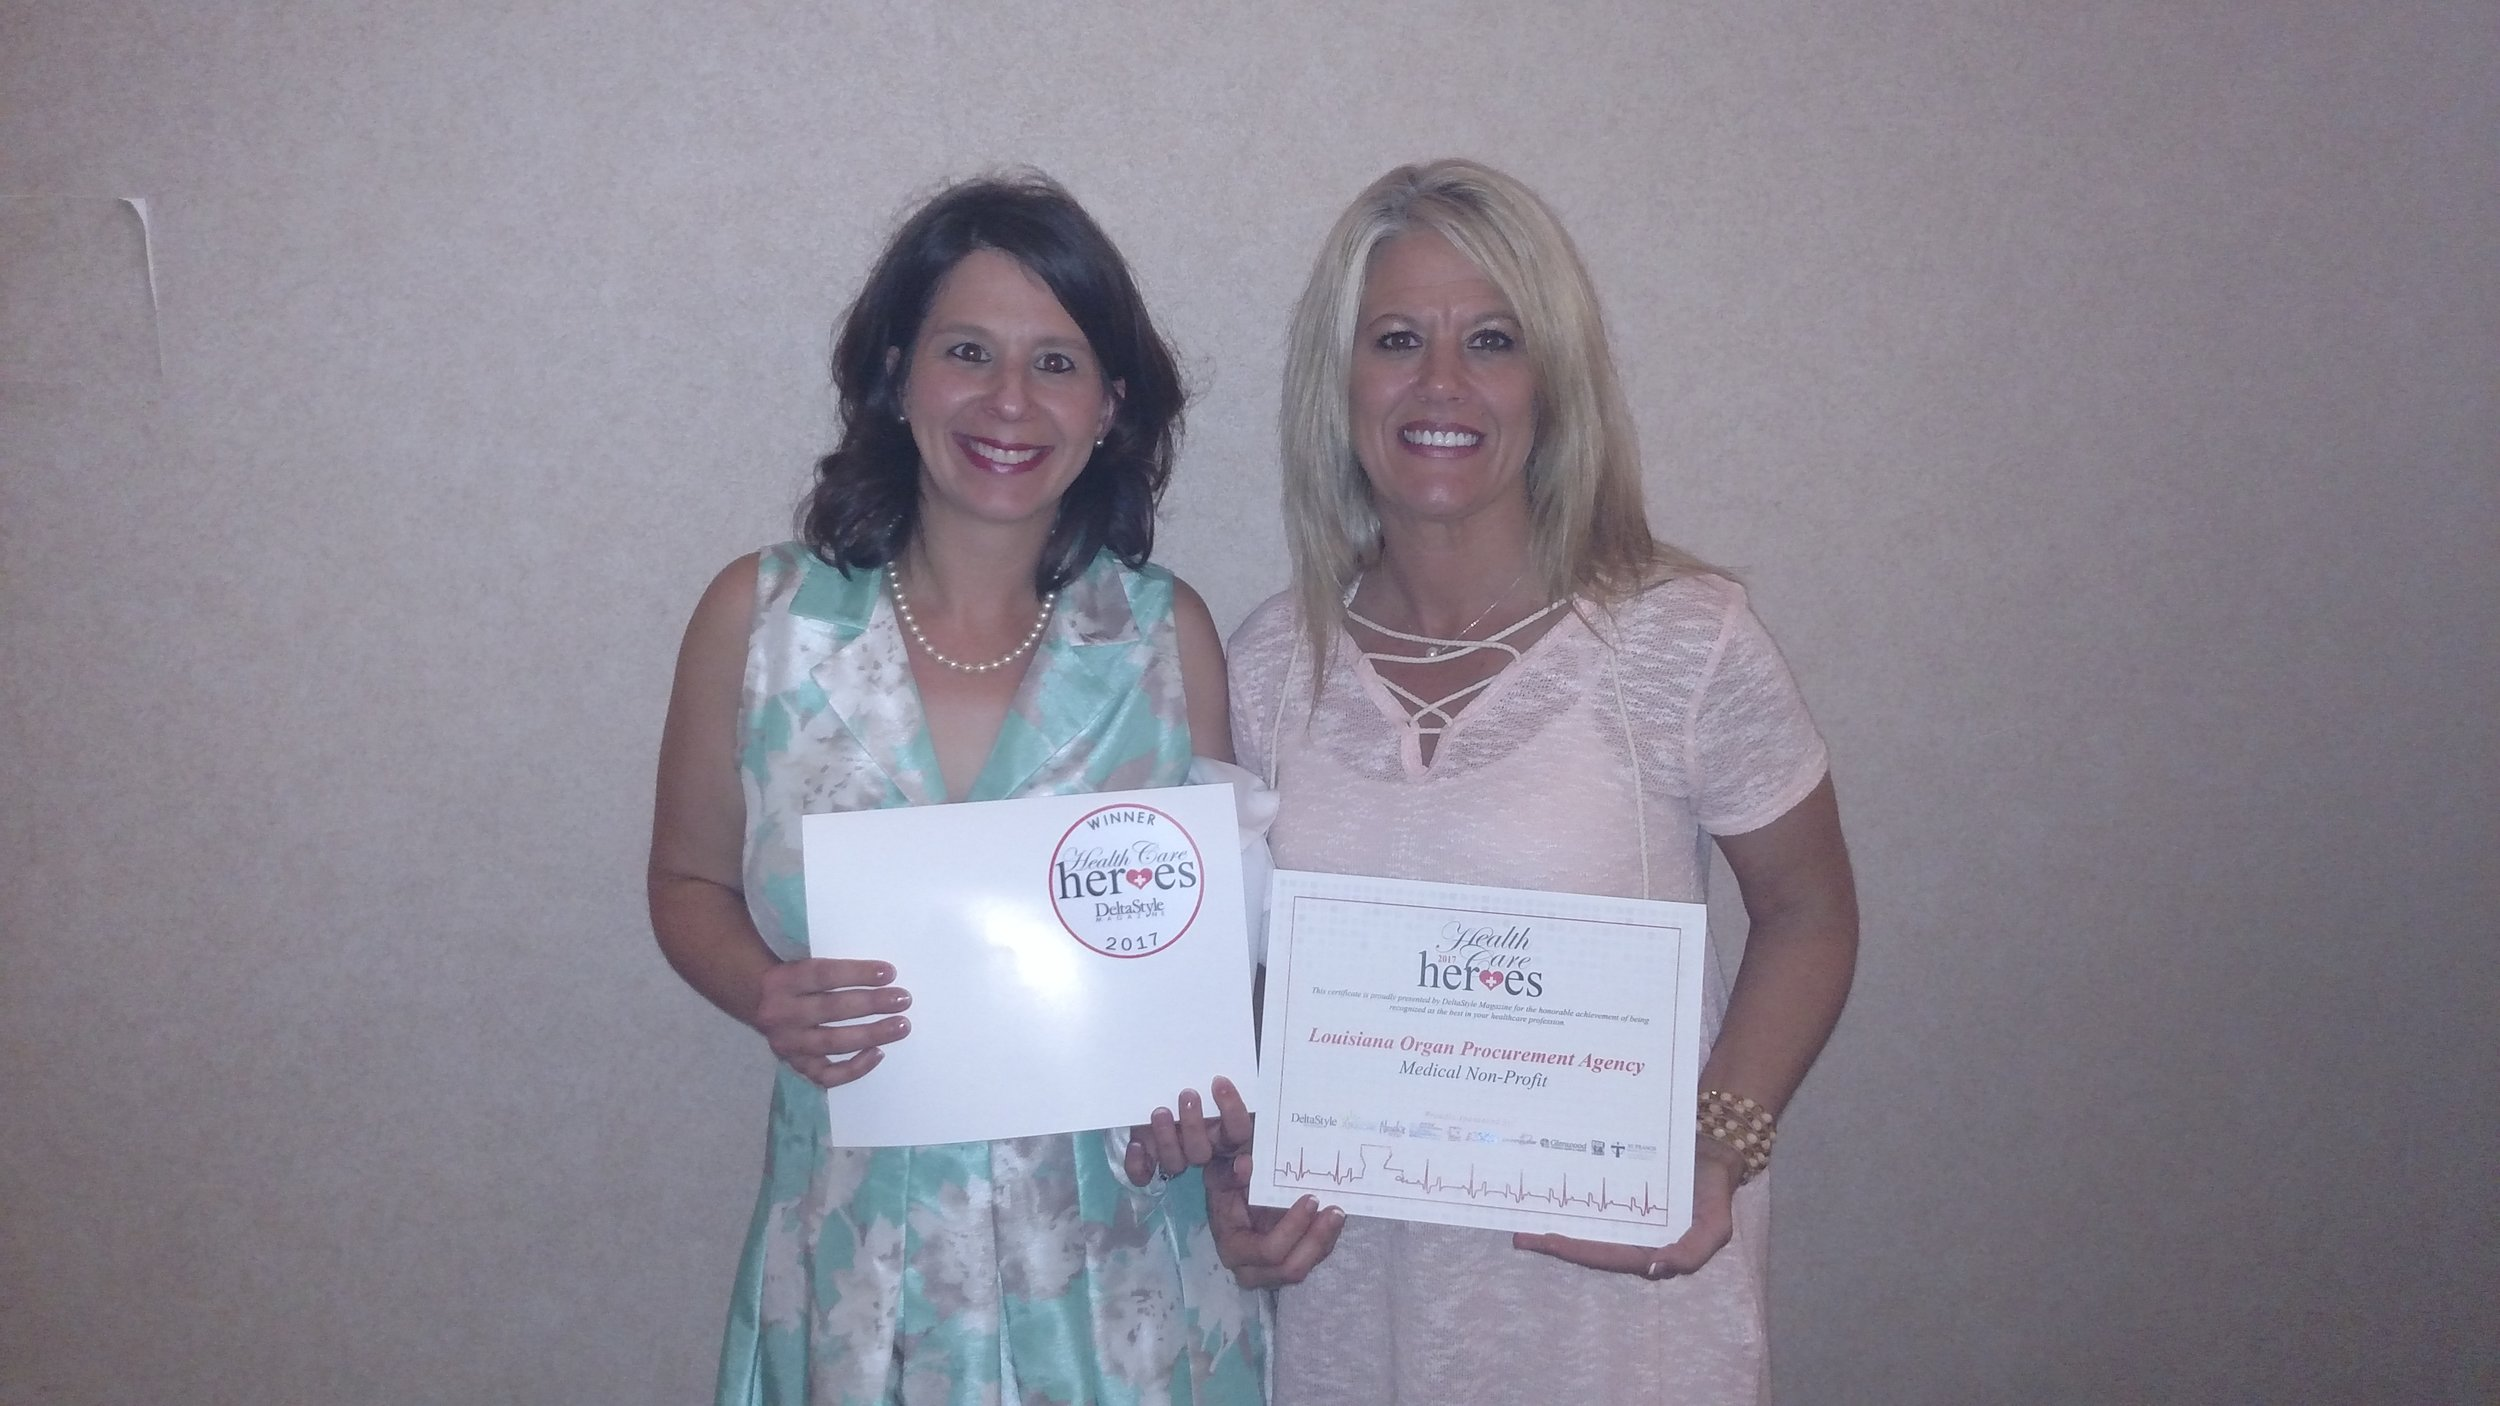 LOPA Community Educator, Leah Lopez and LOPA Donation Services Coordinator, Cindy Baugh accepted the award for LOPA on 6/20.